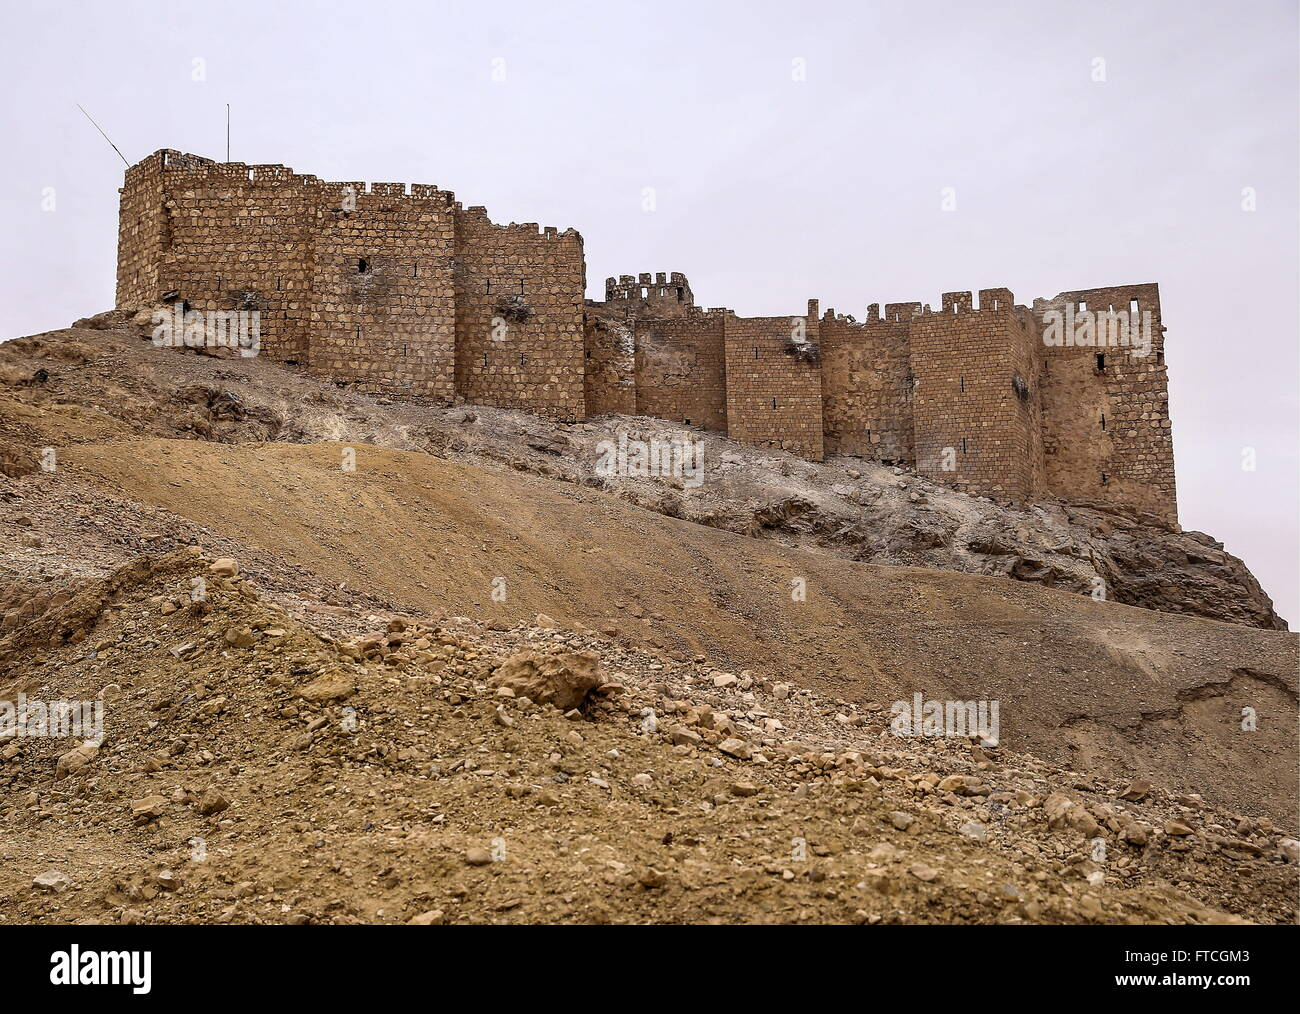 Palmyria, Syria. 26th Mar, 2016. Fakhr al-Din al-Maani Citadel in Palmyra, a UNESCO world heritage site, after it - Stock Image